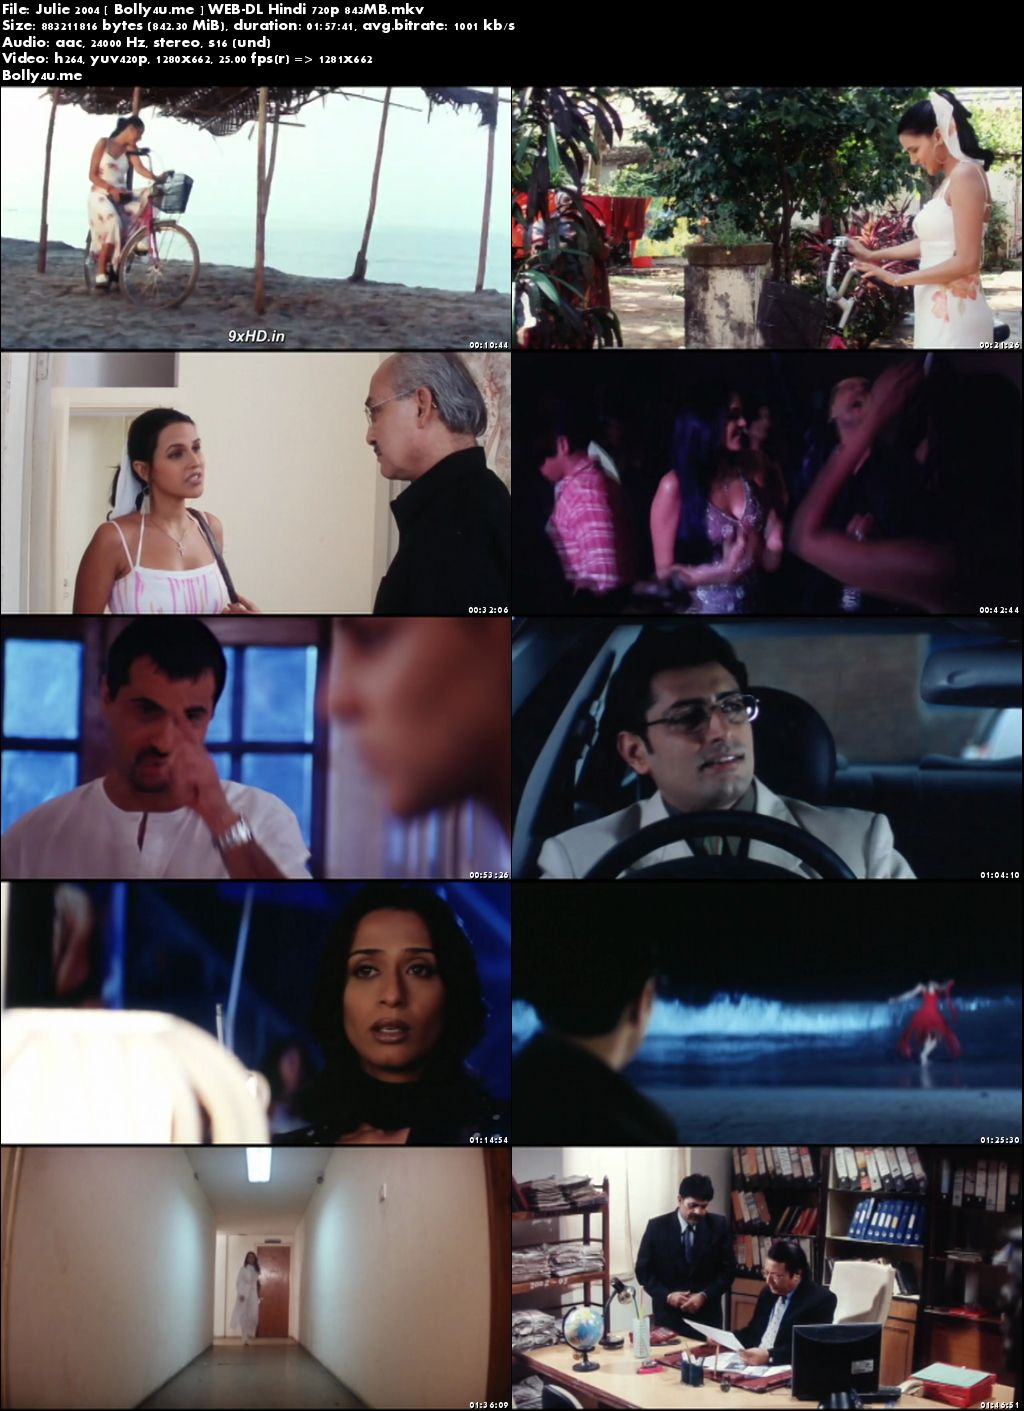 Julie 2004 WEB-DL 850MB Full Hindi Movie Download 720p